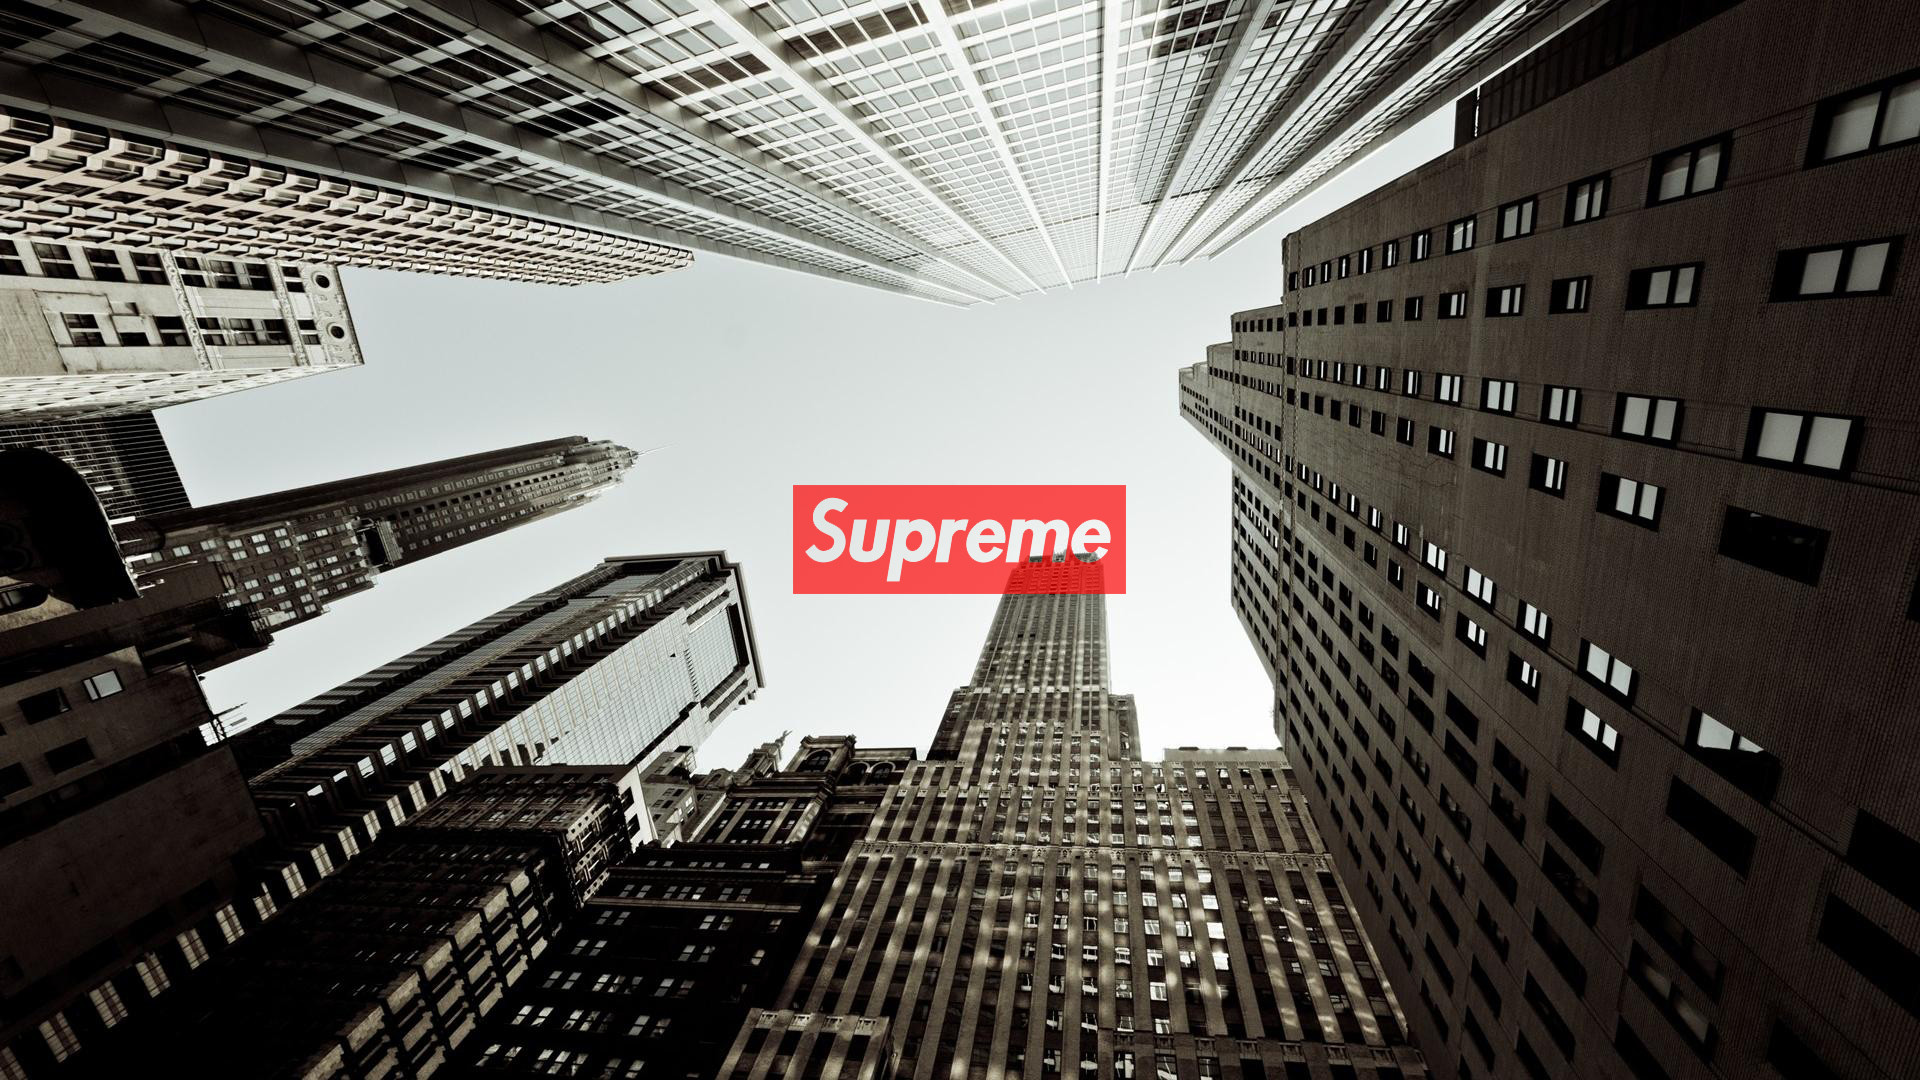 Supreme Hd Wallpaper Many HD Wallpaper 1920x1080